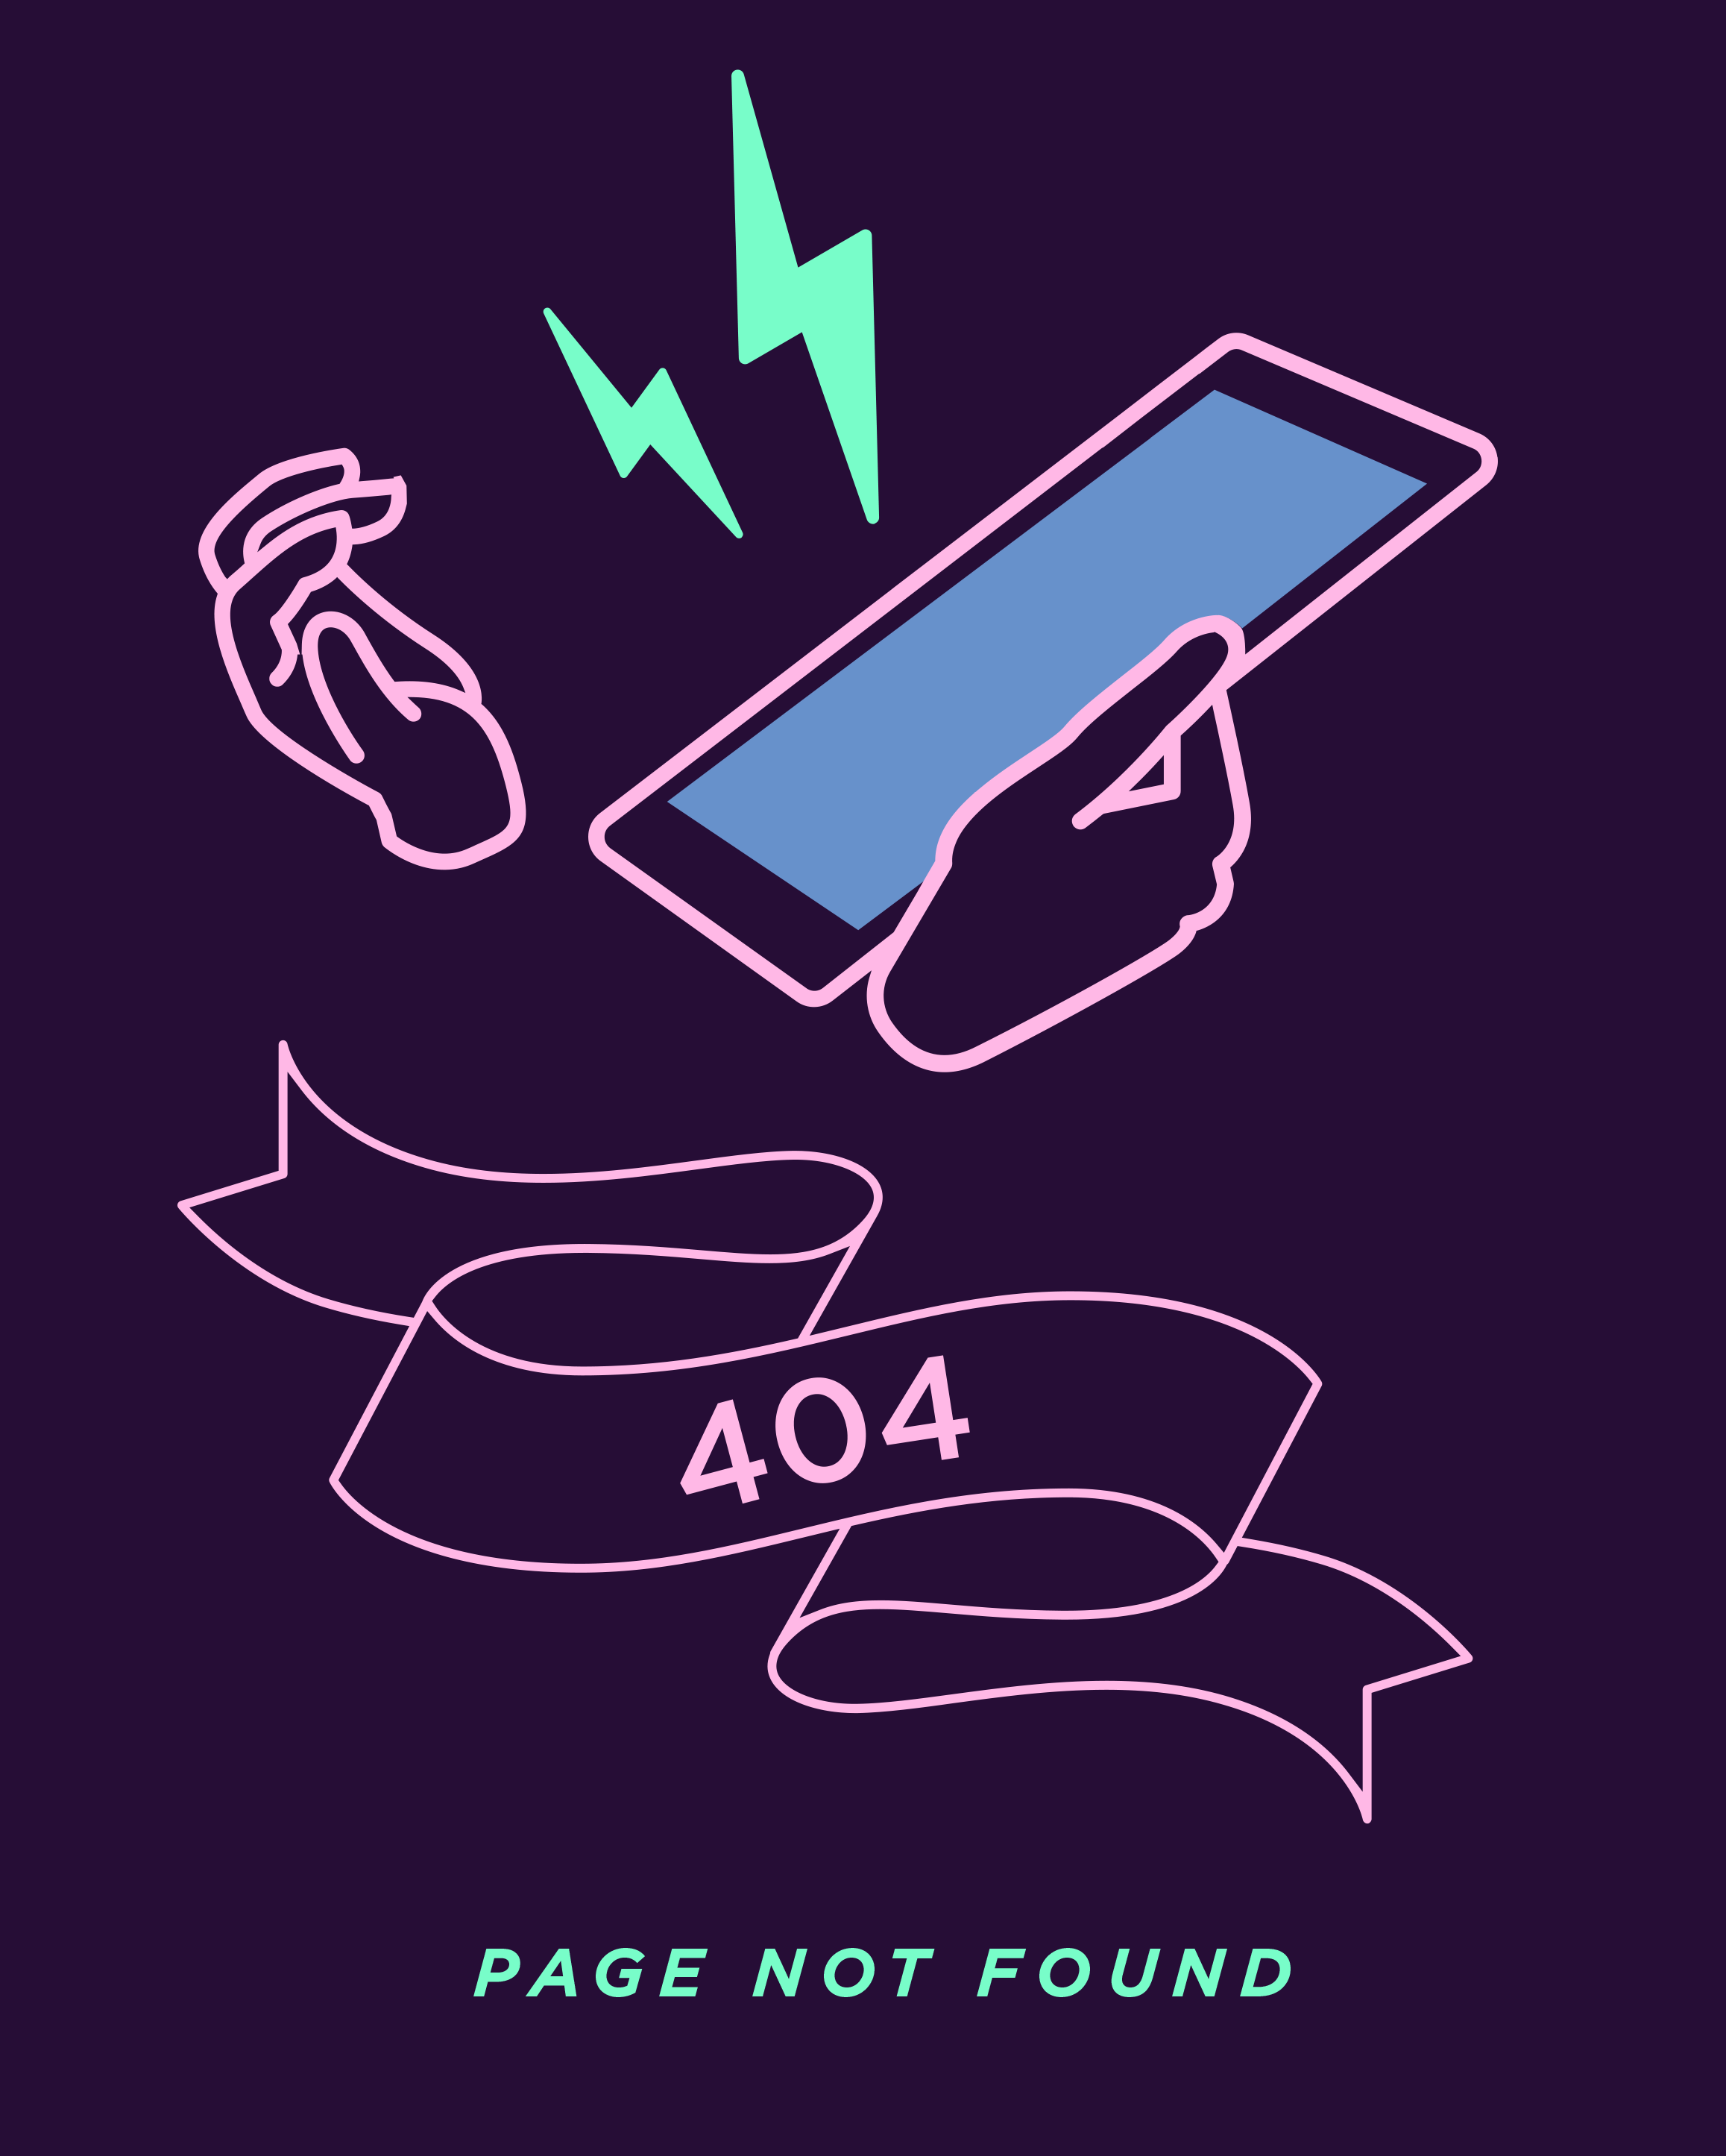 """Illustration showing two hands holding an iPhone with two exclamatory lightning bolts flying out of it, and a """"404"""" curly banner with """"Page not found"""" written underneath"""